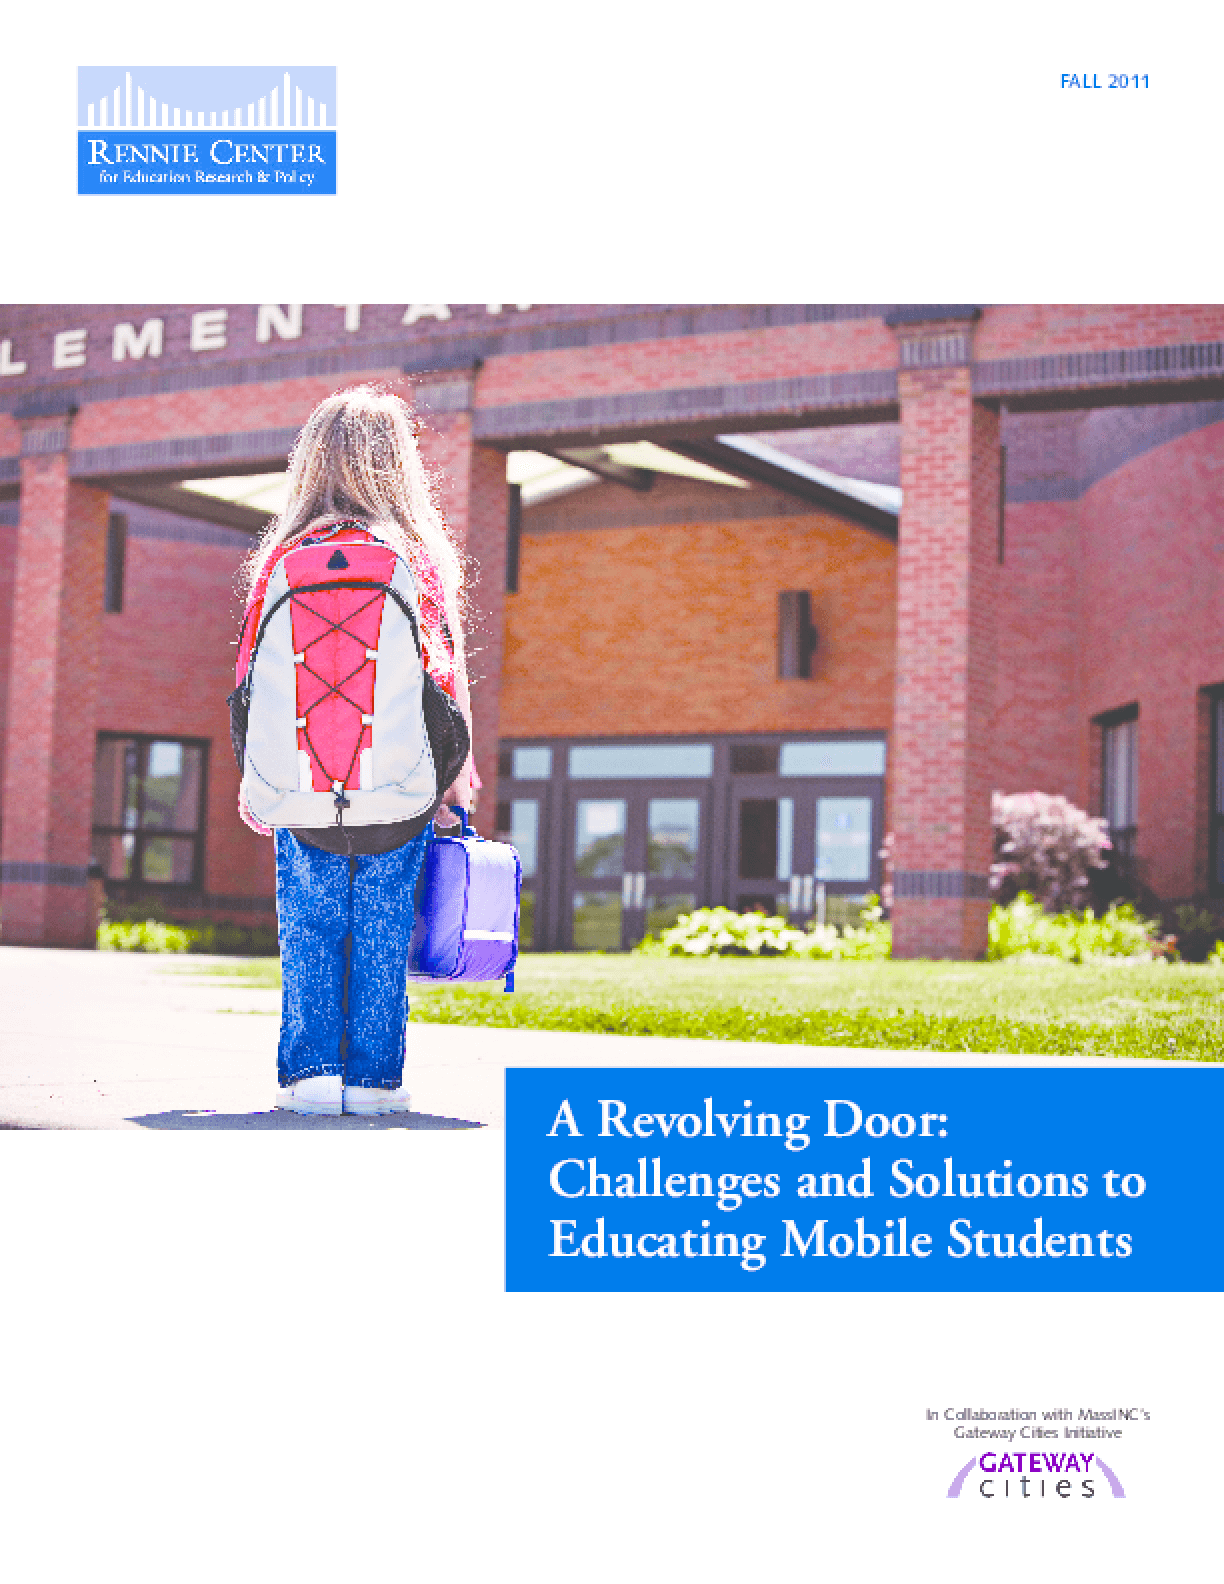 A Revolving Door: Challenges and Solutions to Educating Mobile Students